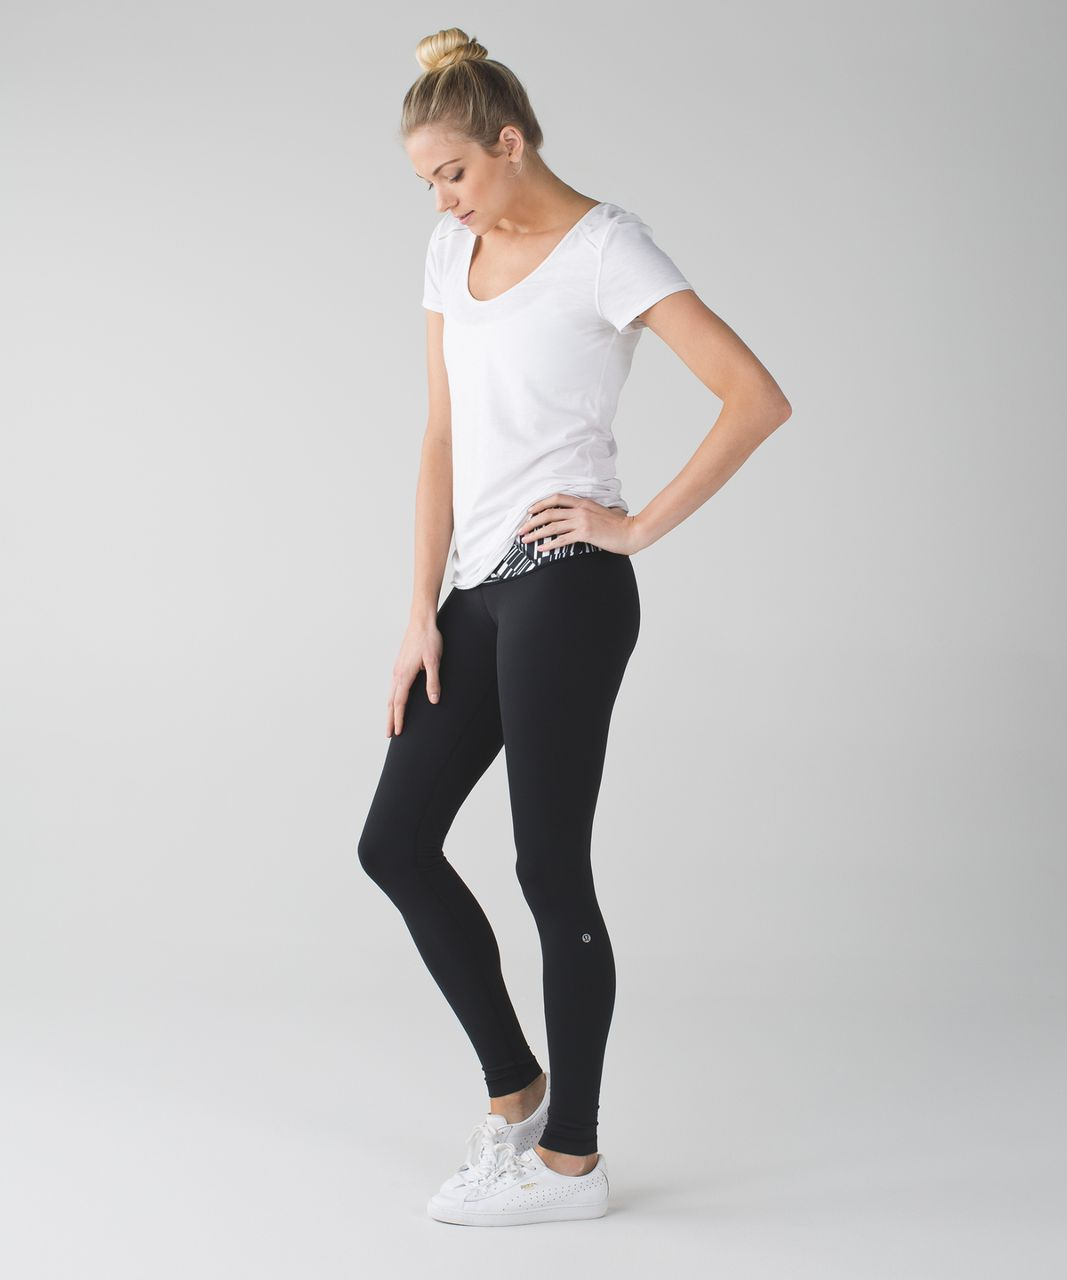 Lululemon Wunder Under Pant III - Black / Ying Yang Stripe White Black